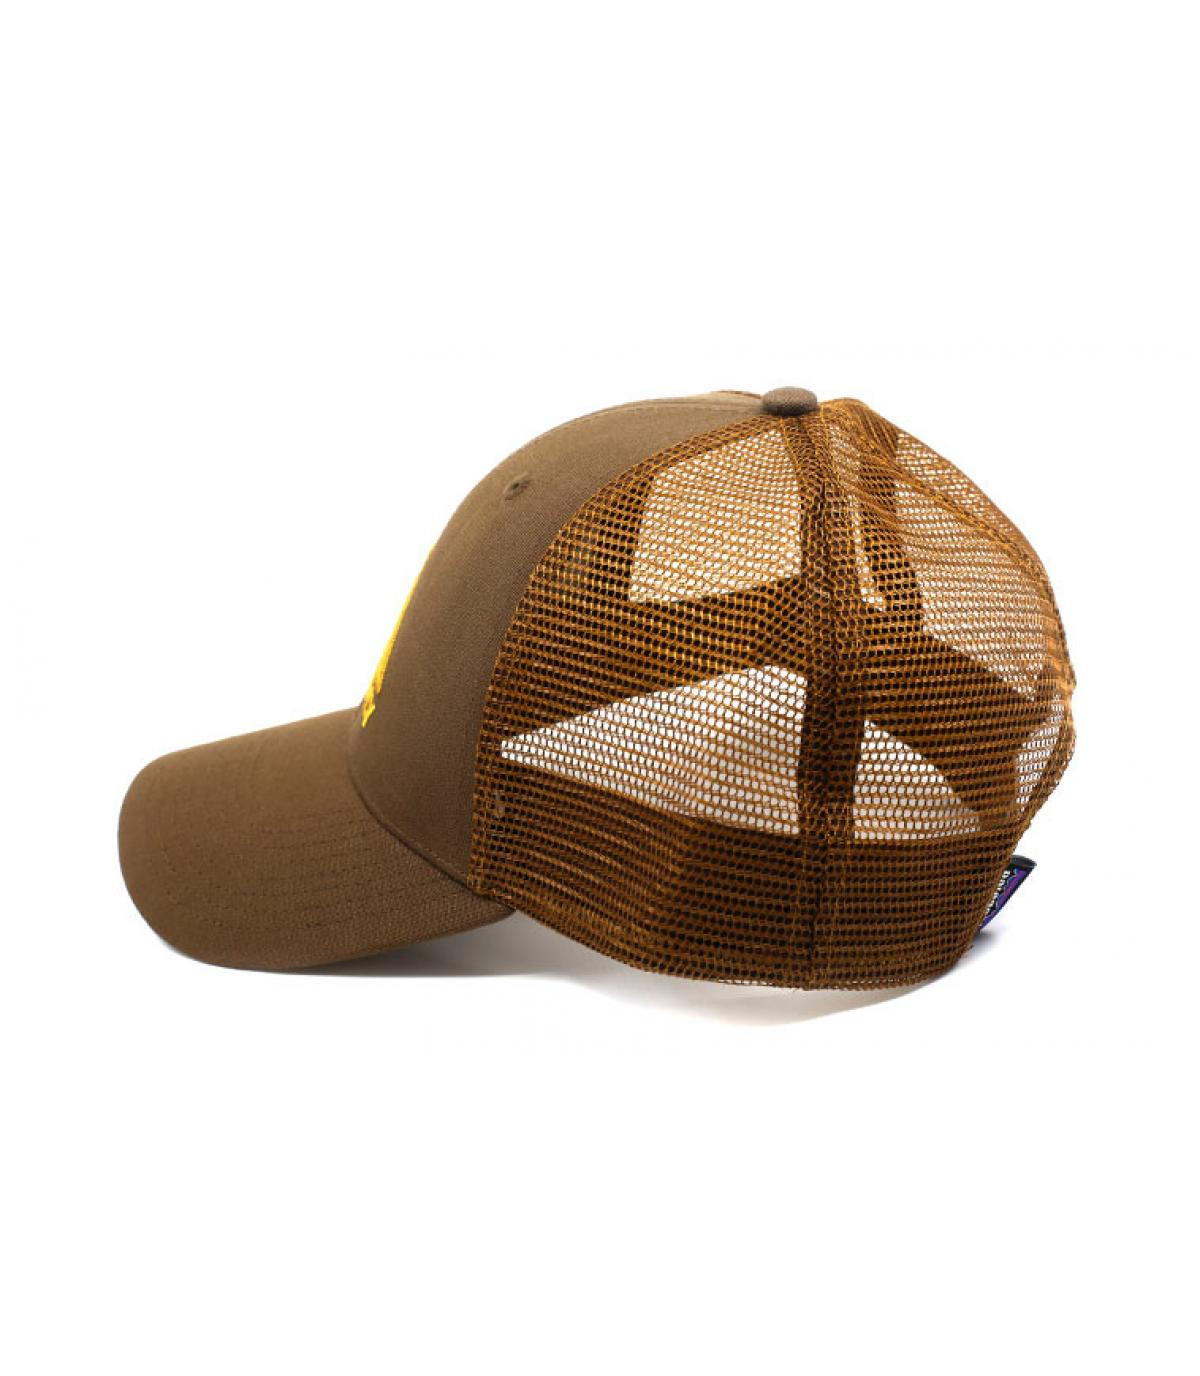 Détails Live Simply LoPro Trucker timber brown - image 4